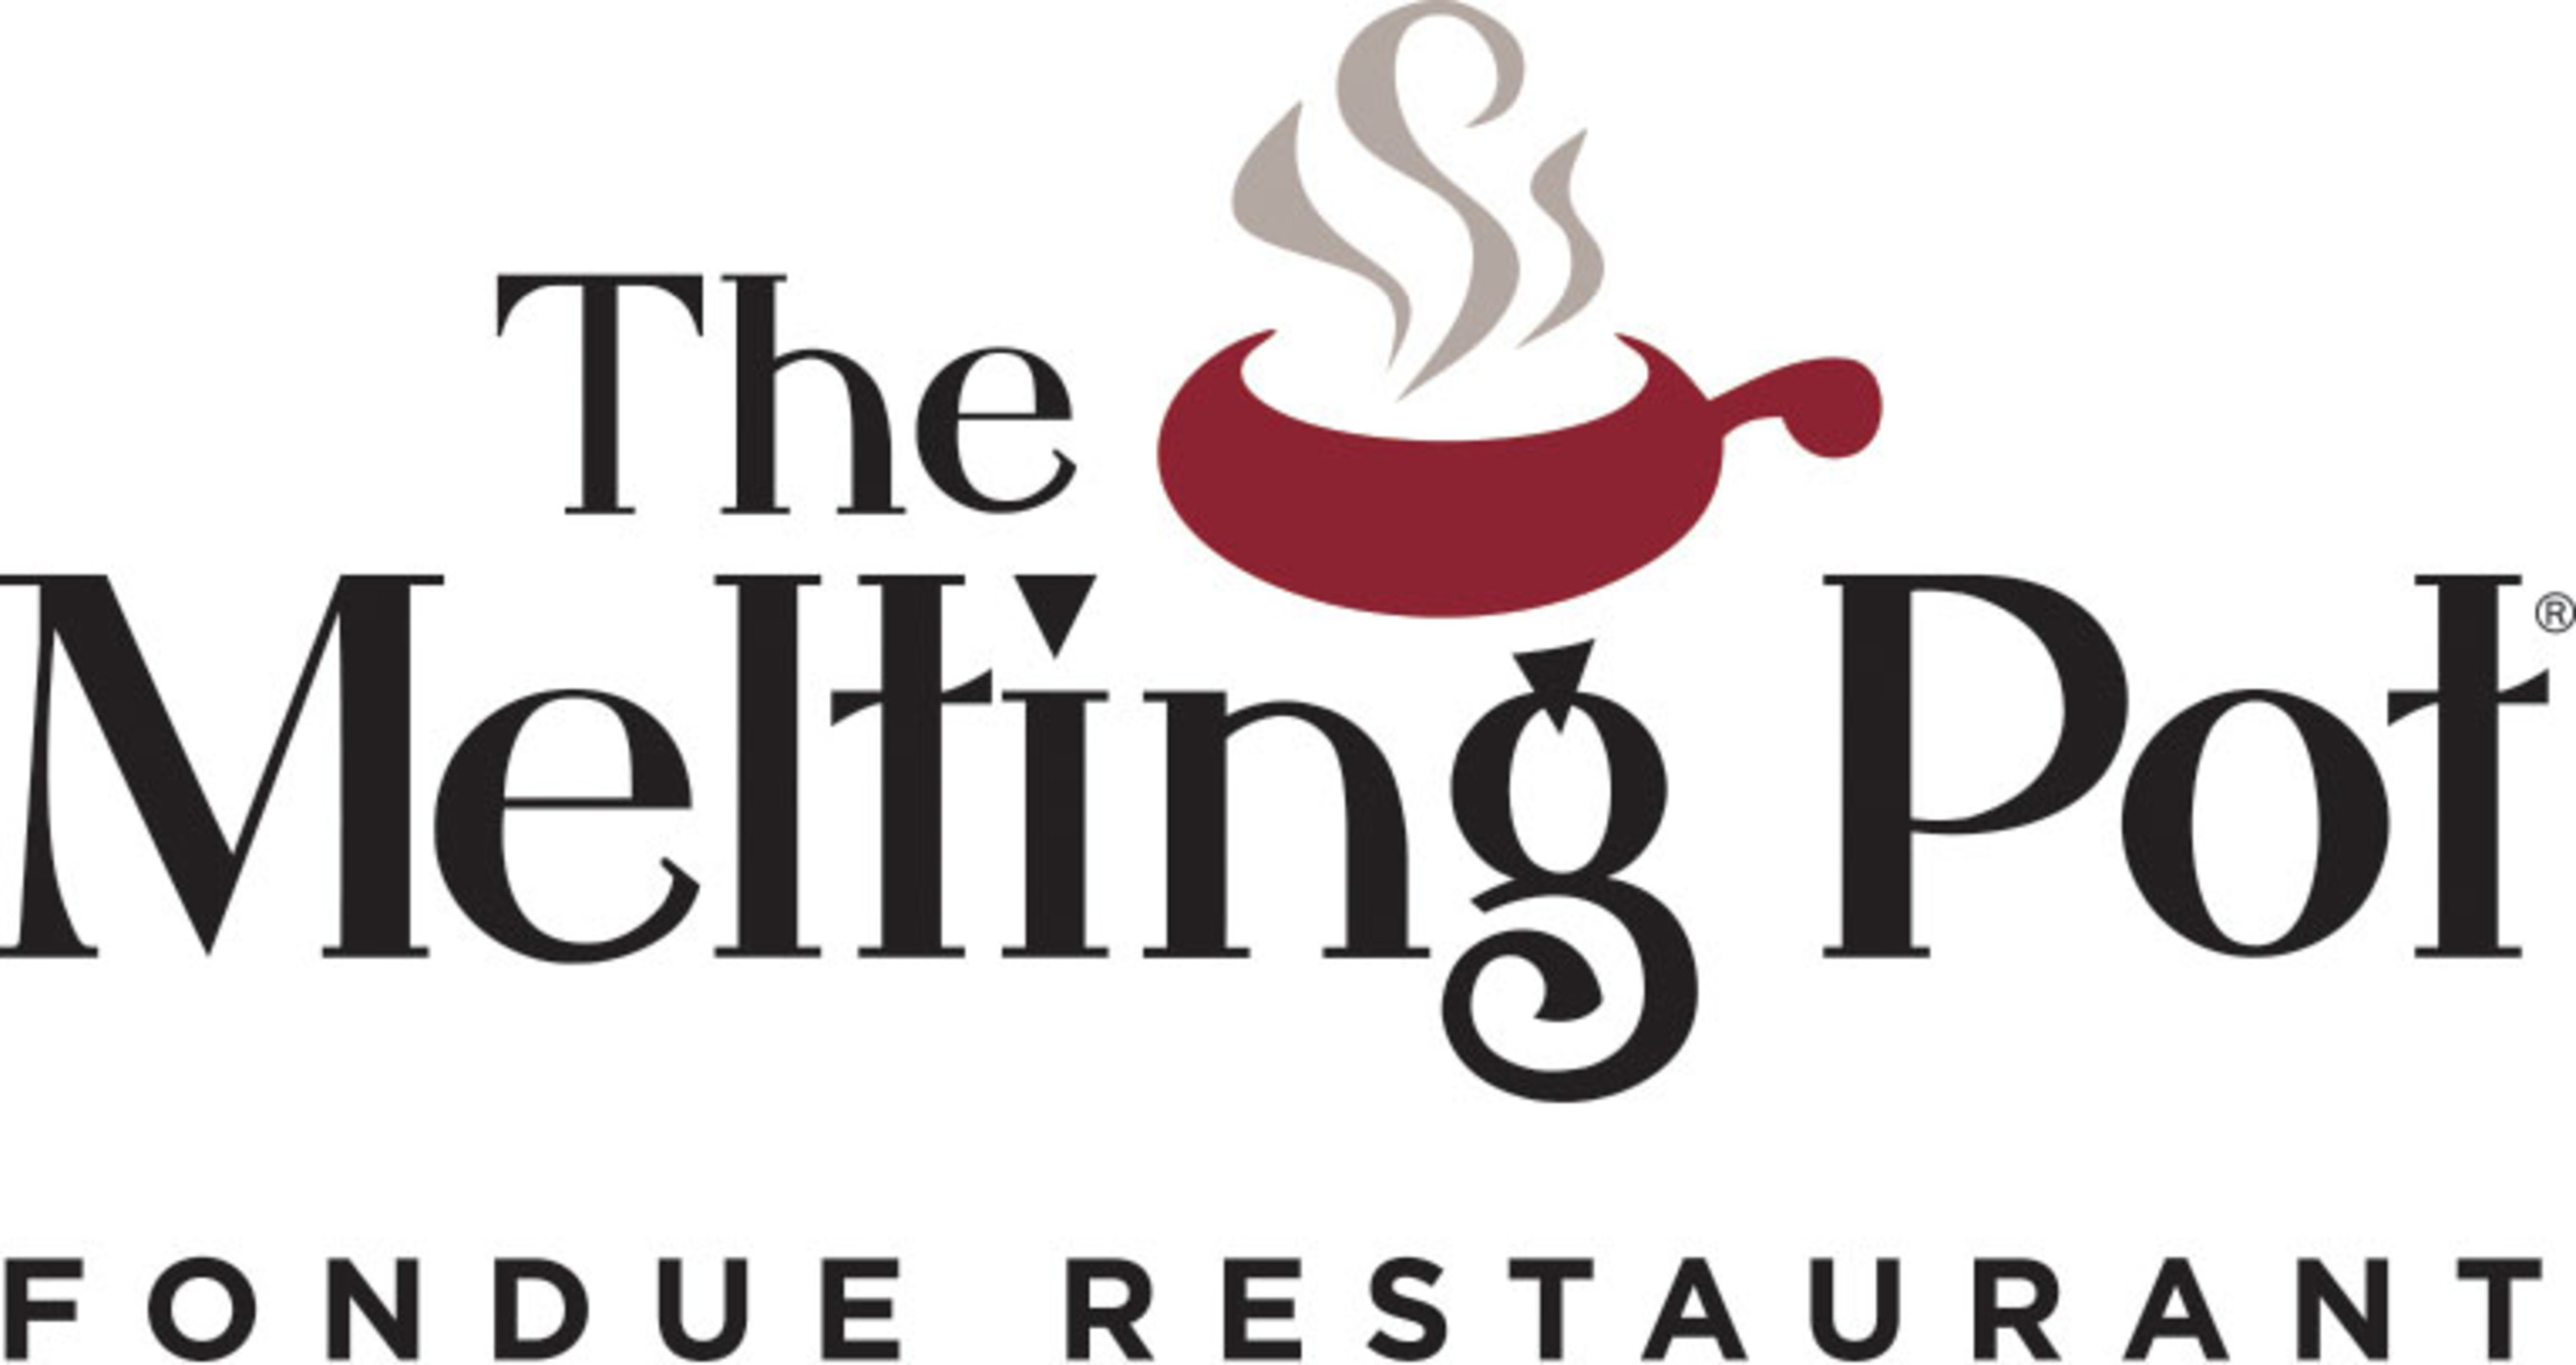 Nation S Restaurant News Names The Melting Pot As No 2 Casual Dining Chain In 2016 Consumer Picks Report